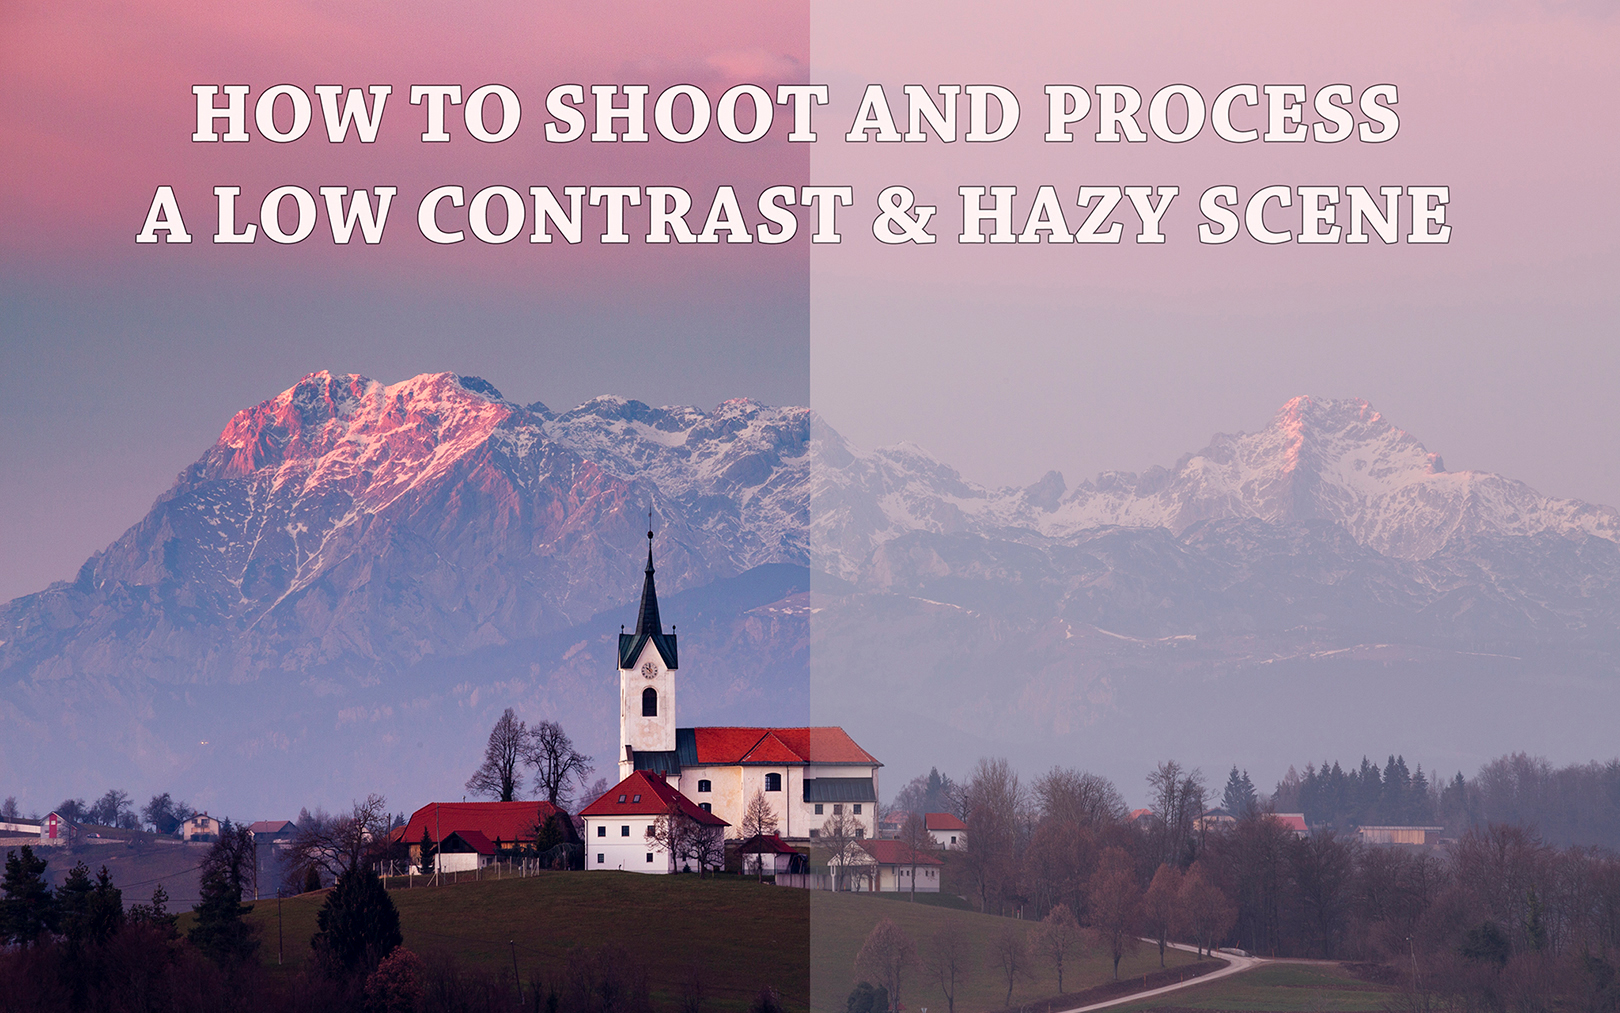 How to photograph and process low contrast and hazy scenes